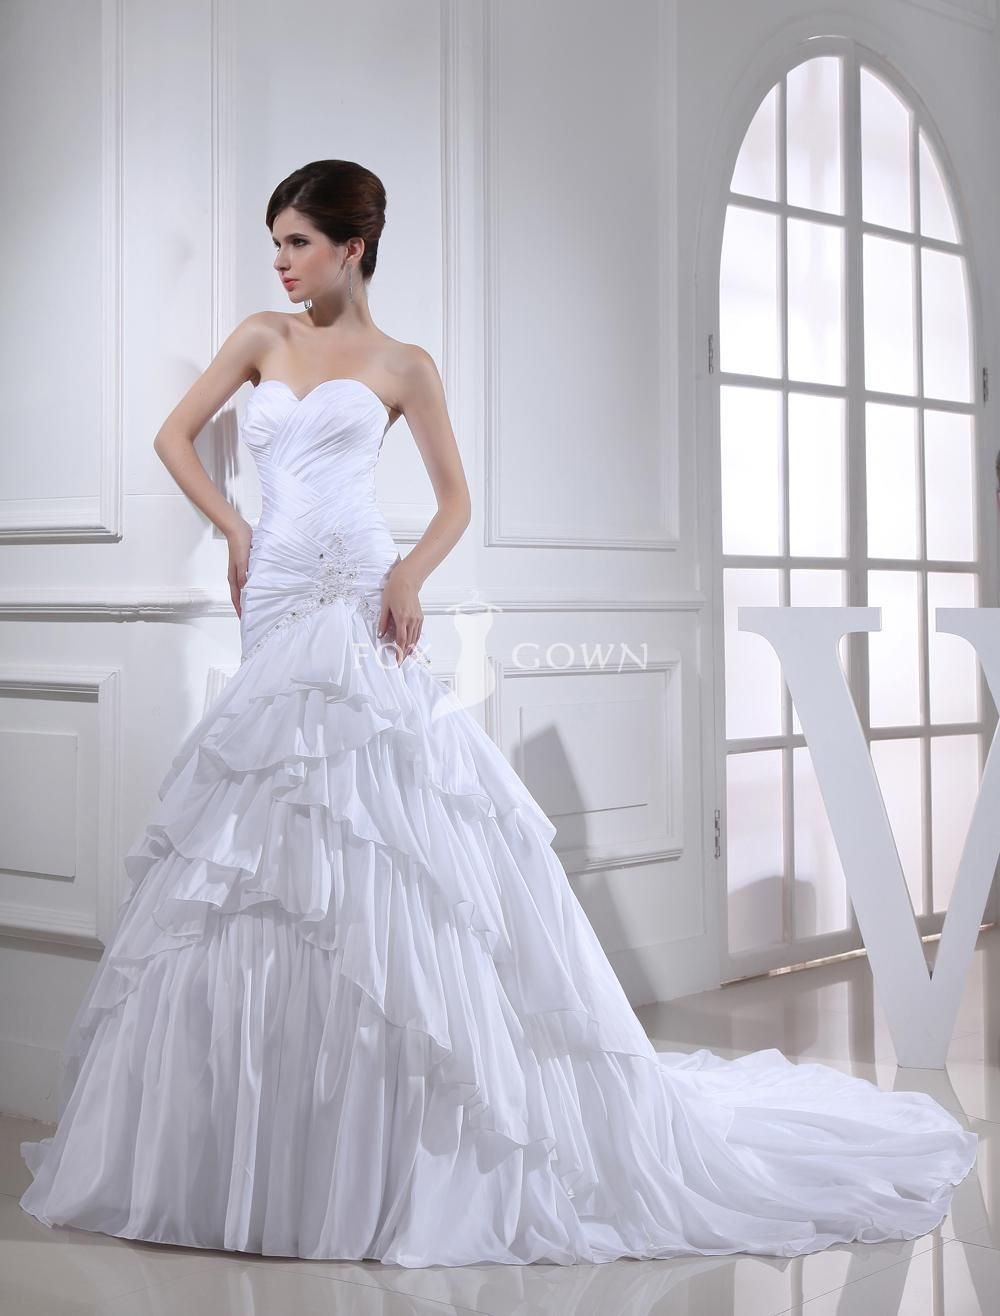 Wedding dress ruched skirt with ruffle